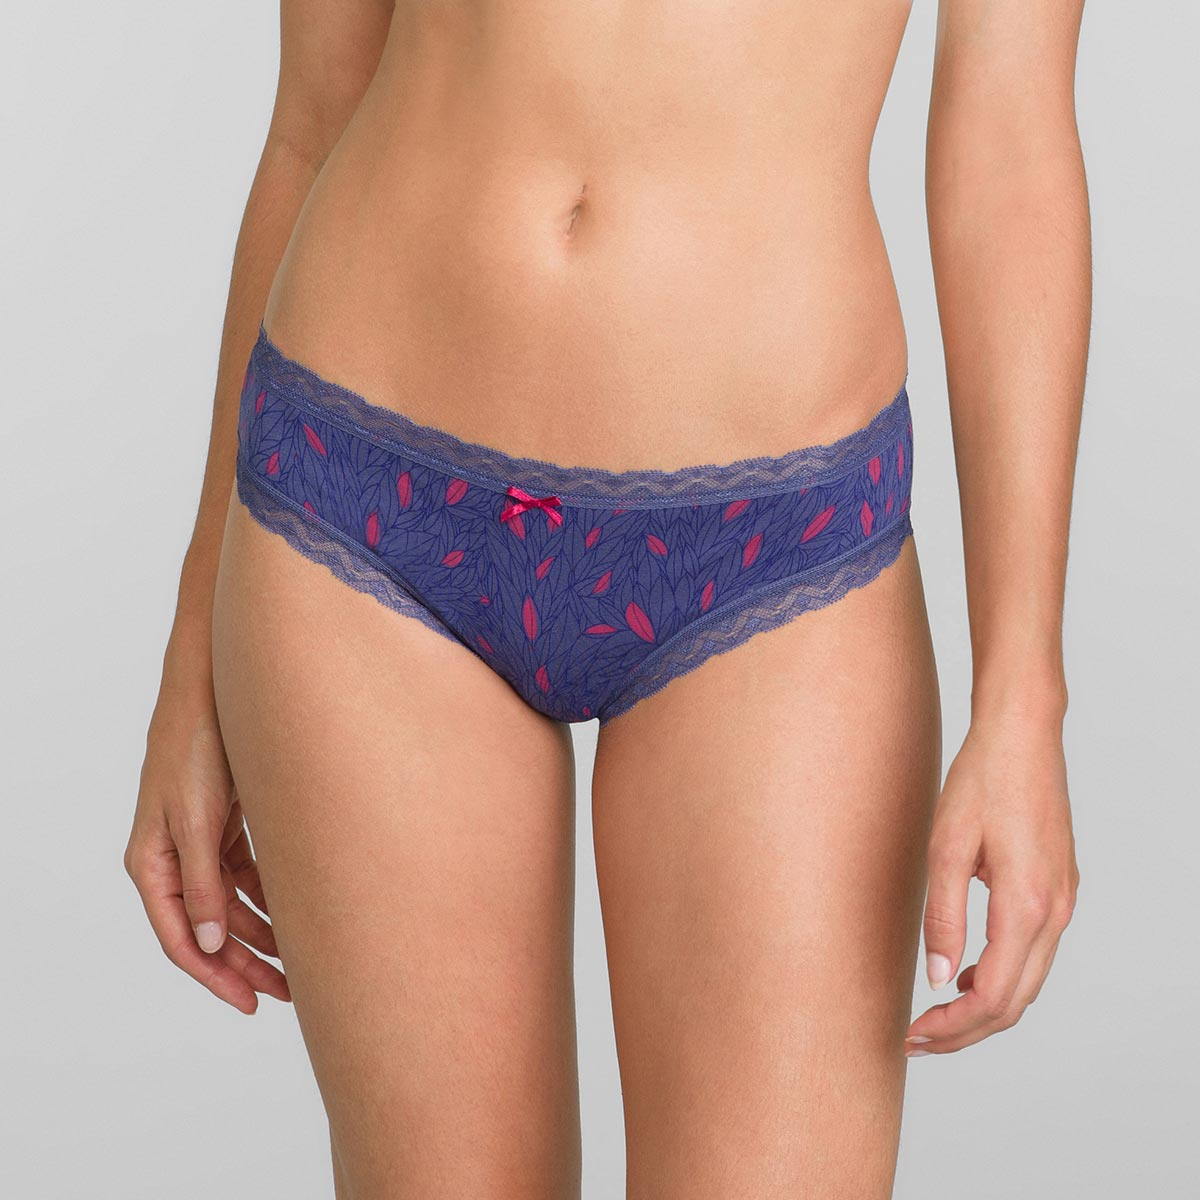 Knickers in Graphic Leaves Print Cotton Fancy 2 pack, , PLAYTEX